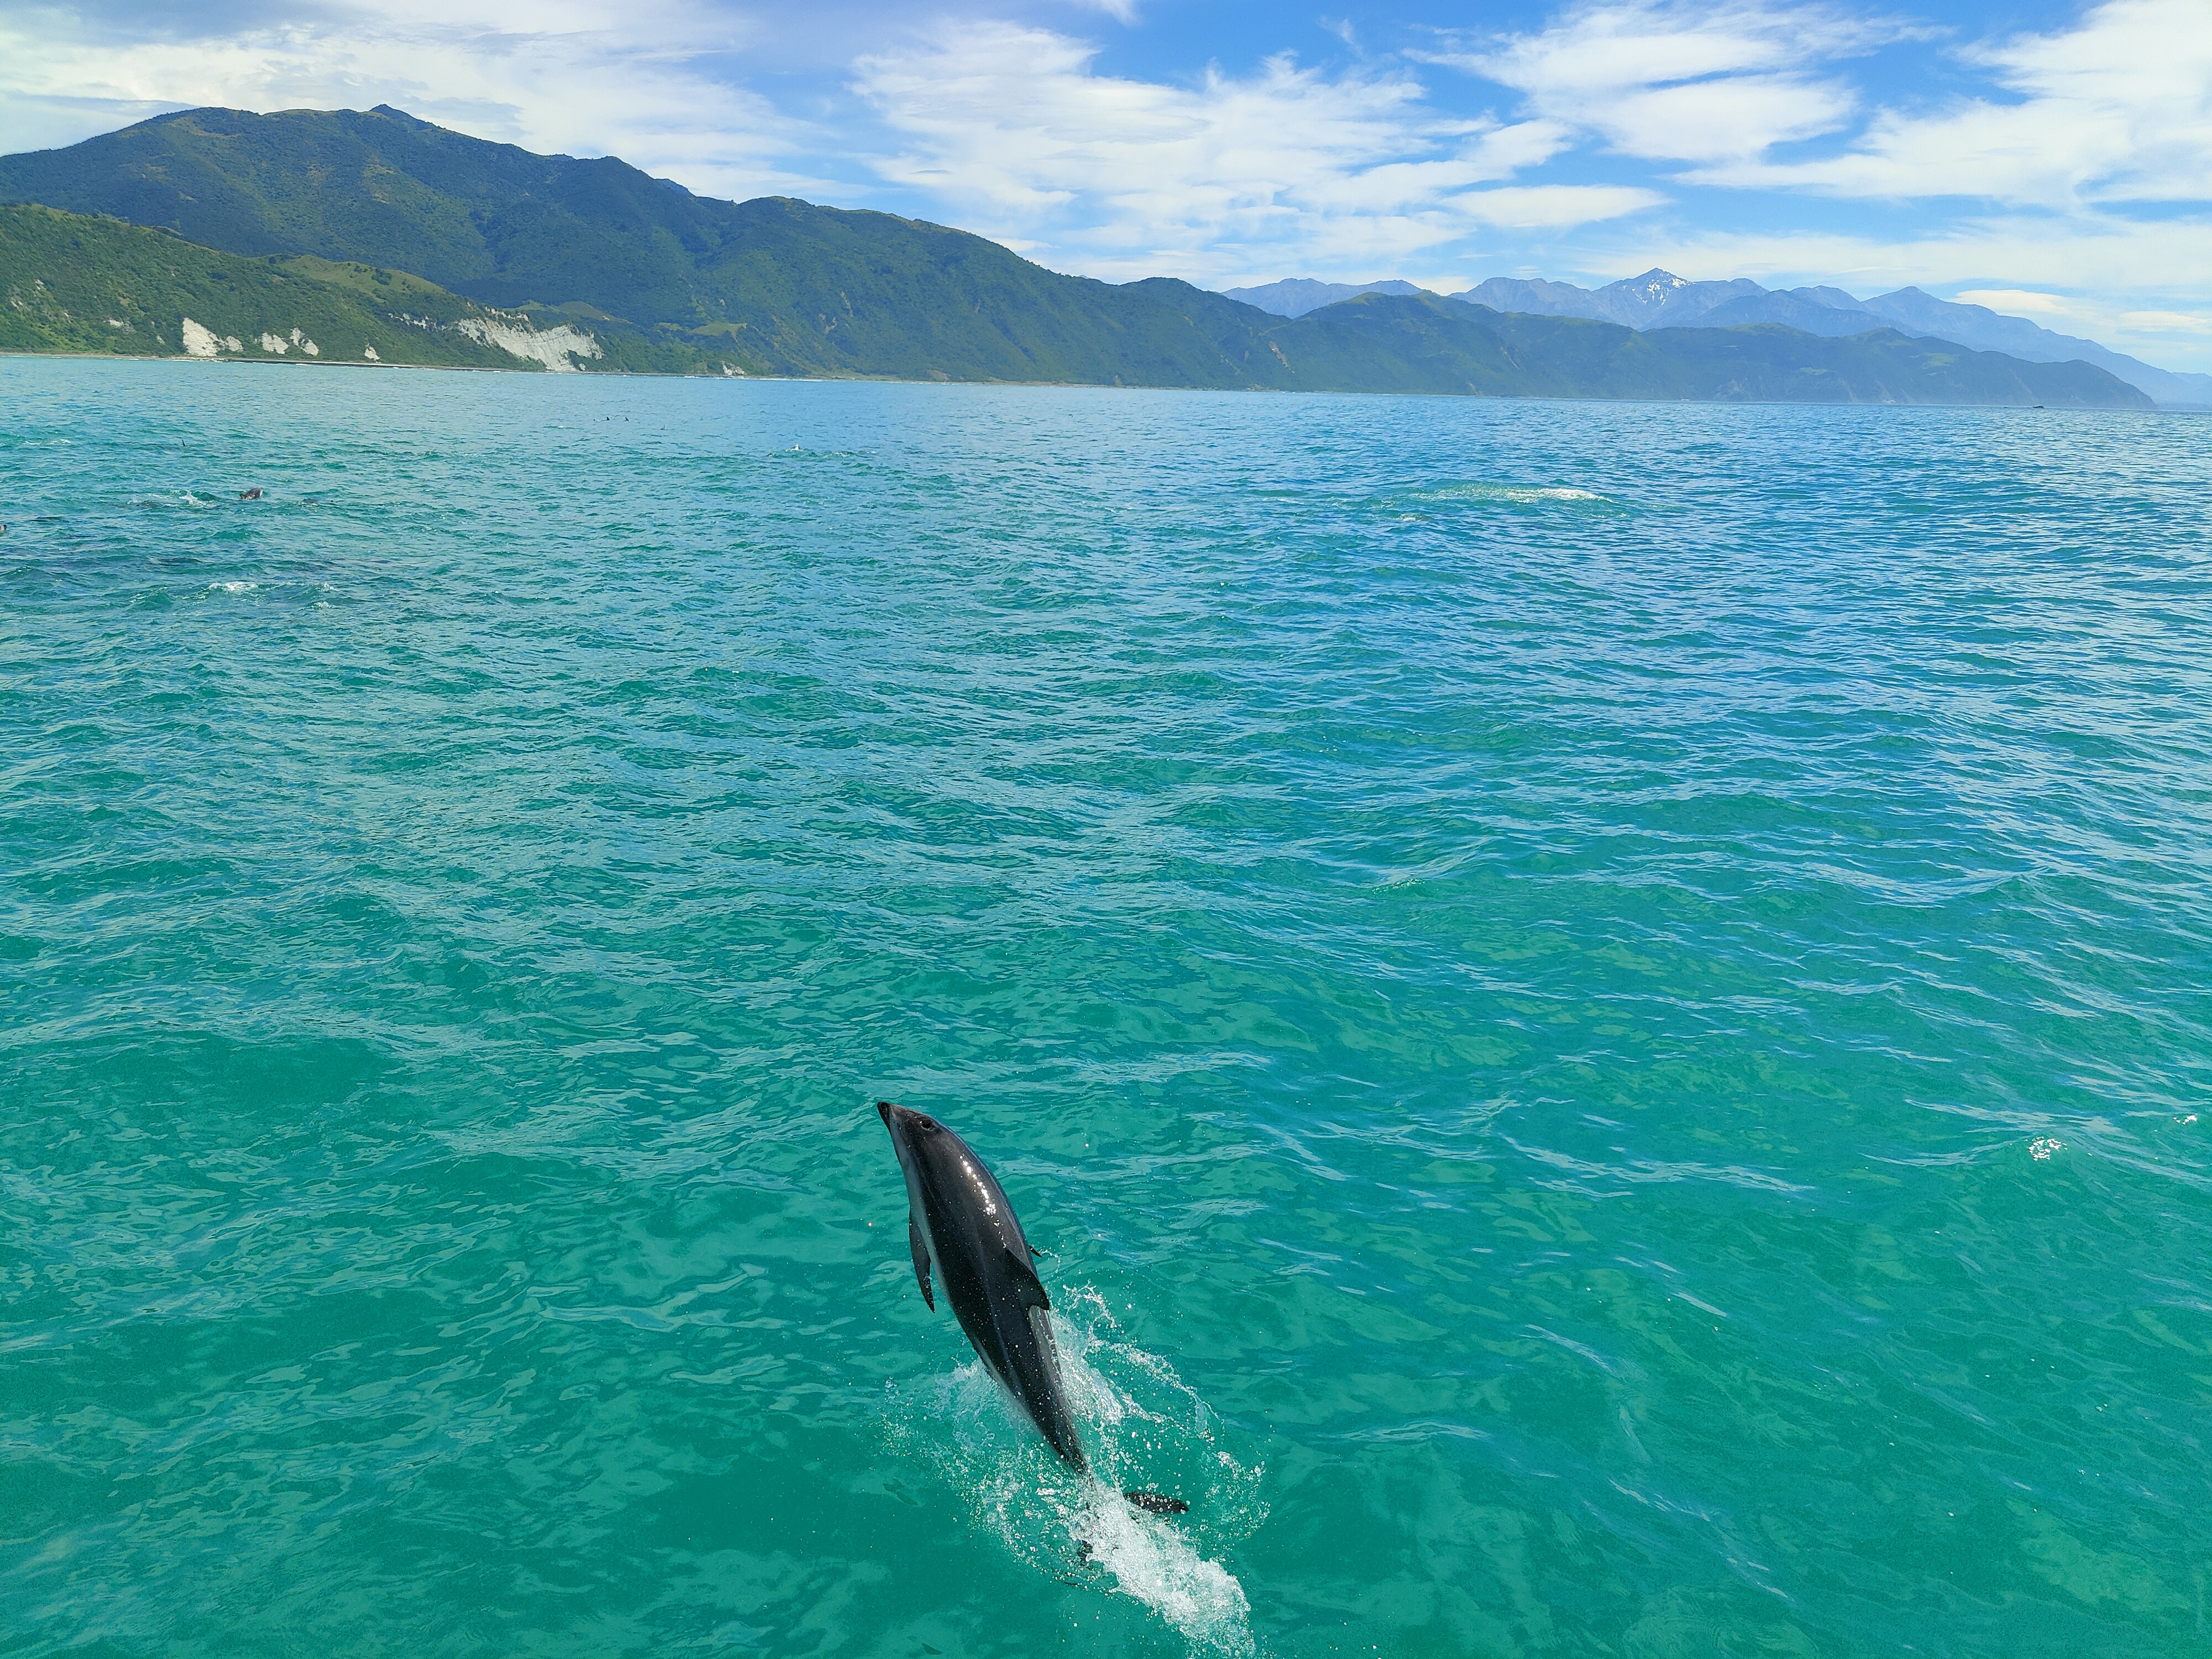 A dolphin jumping from the water